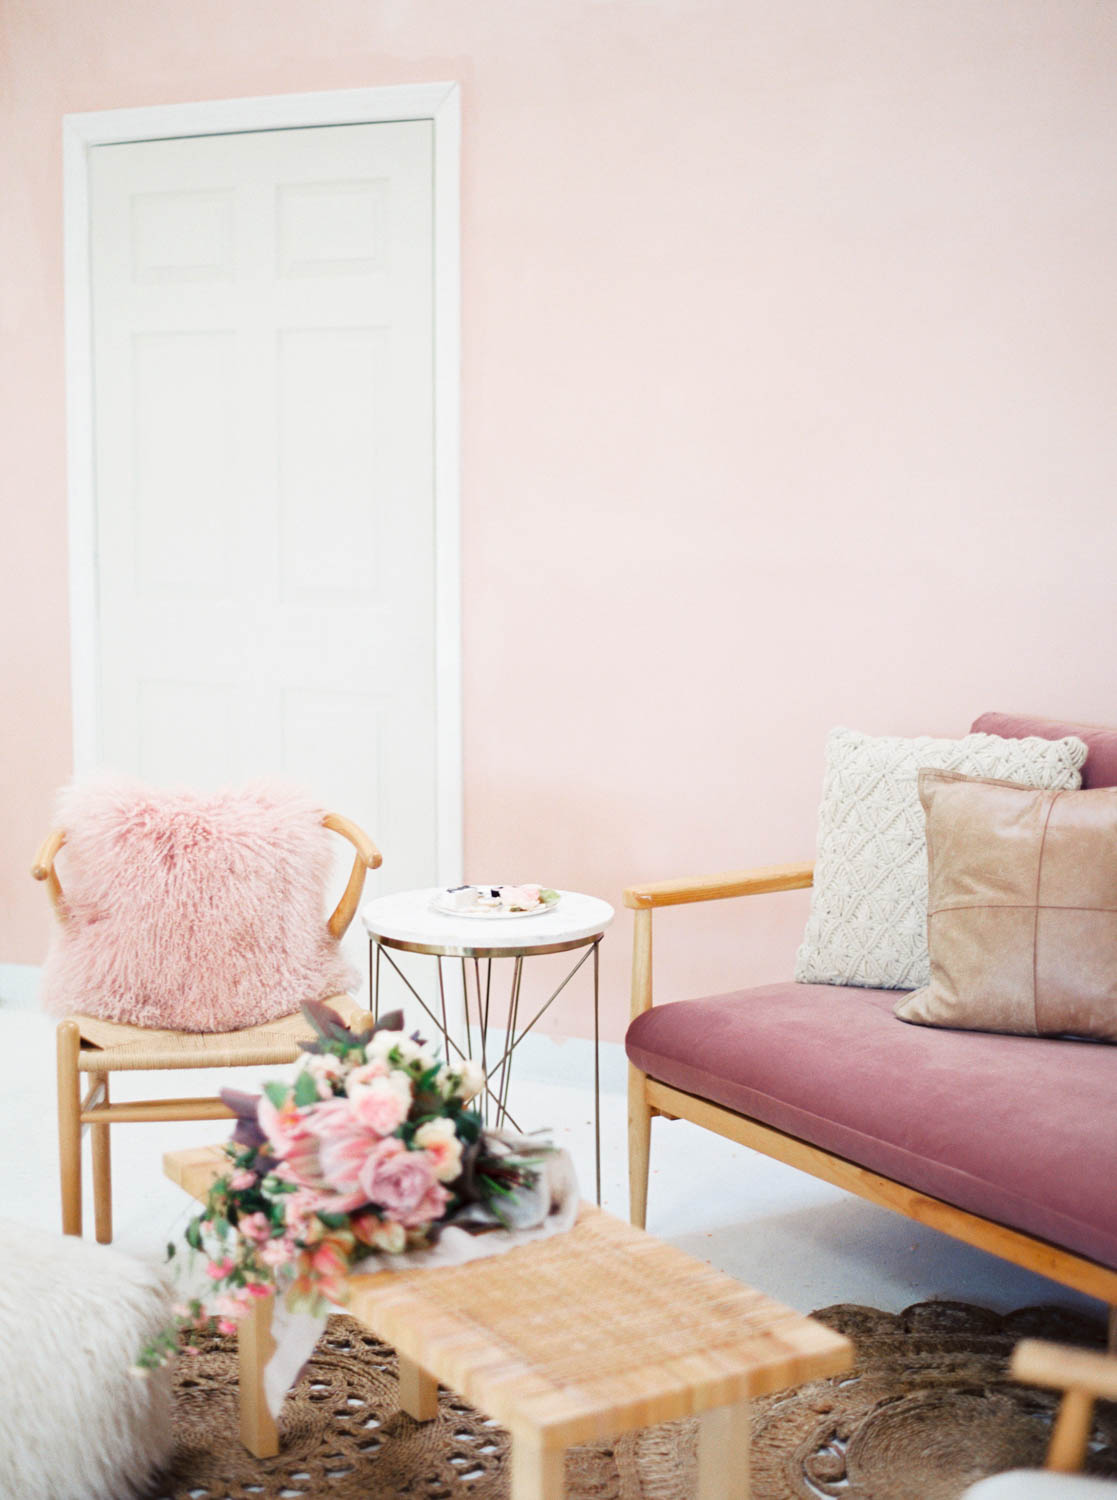 San Diego film wedding photo of a Pink and white wedding lounge for an after party or cocktail hour, Cavin Elizabeth Photography and Amorology